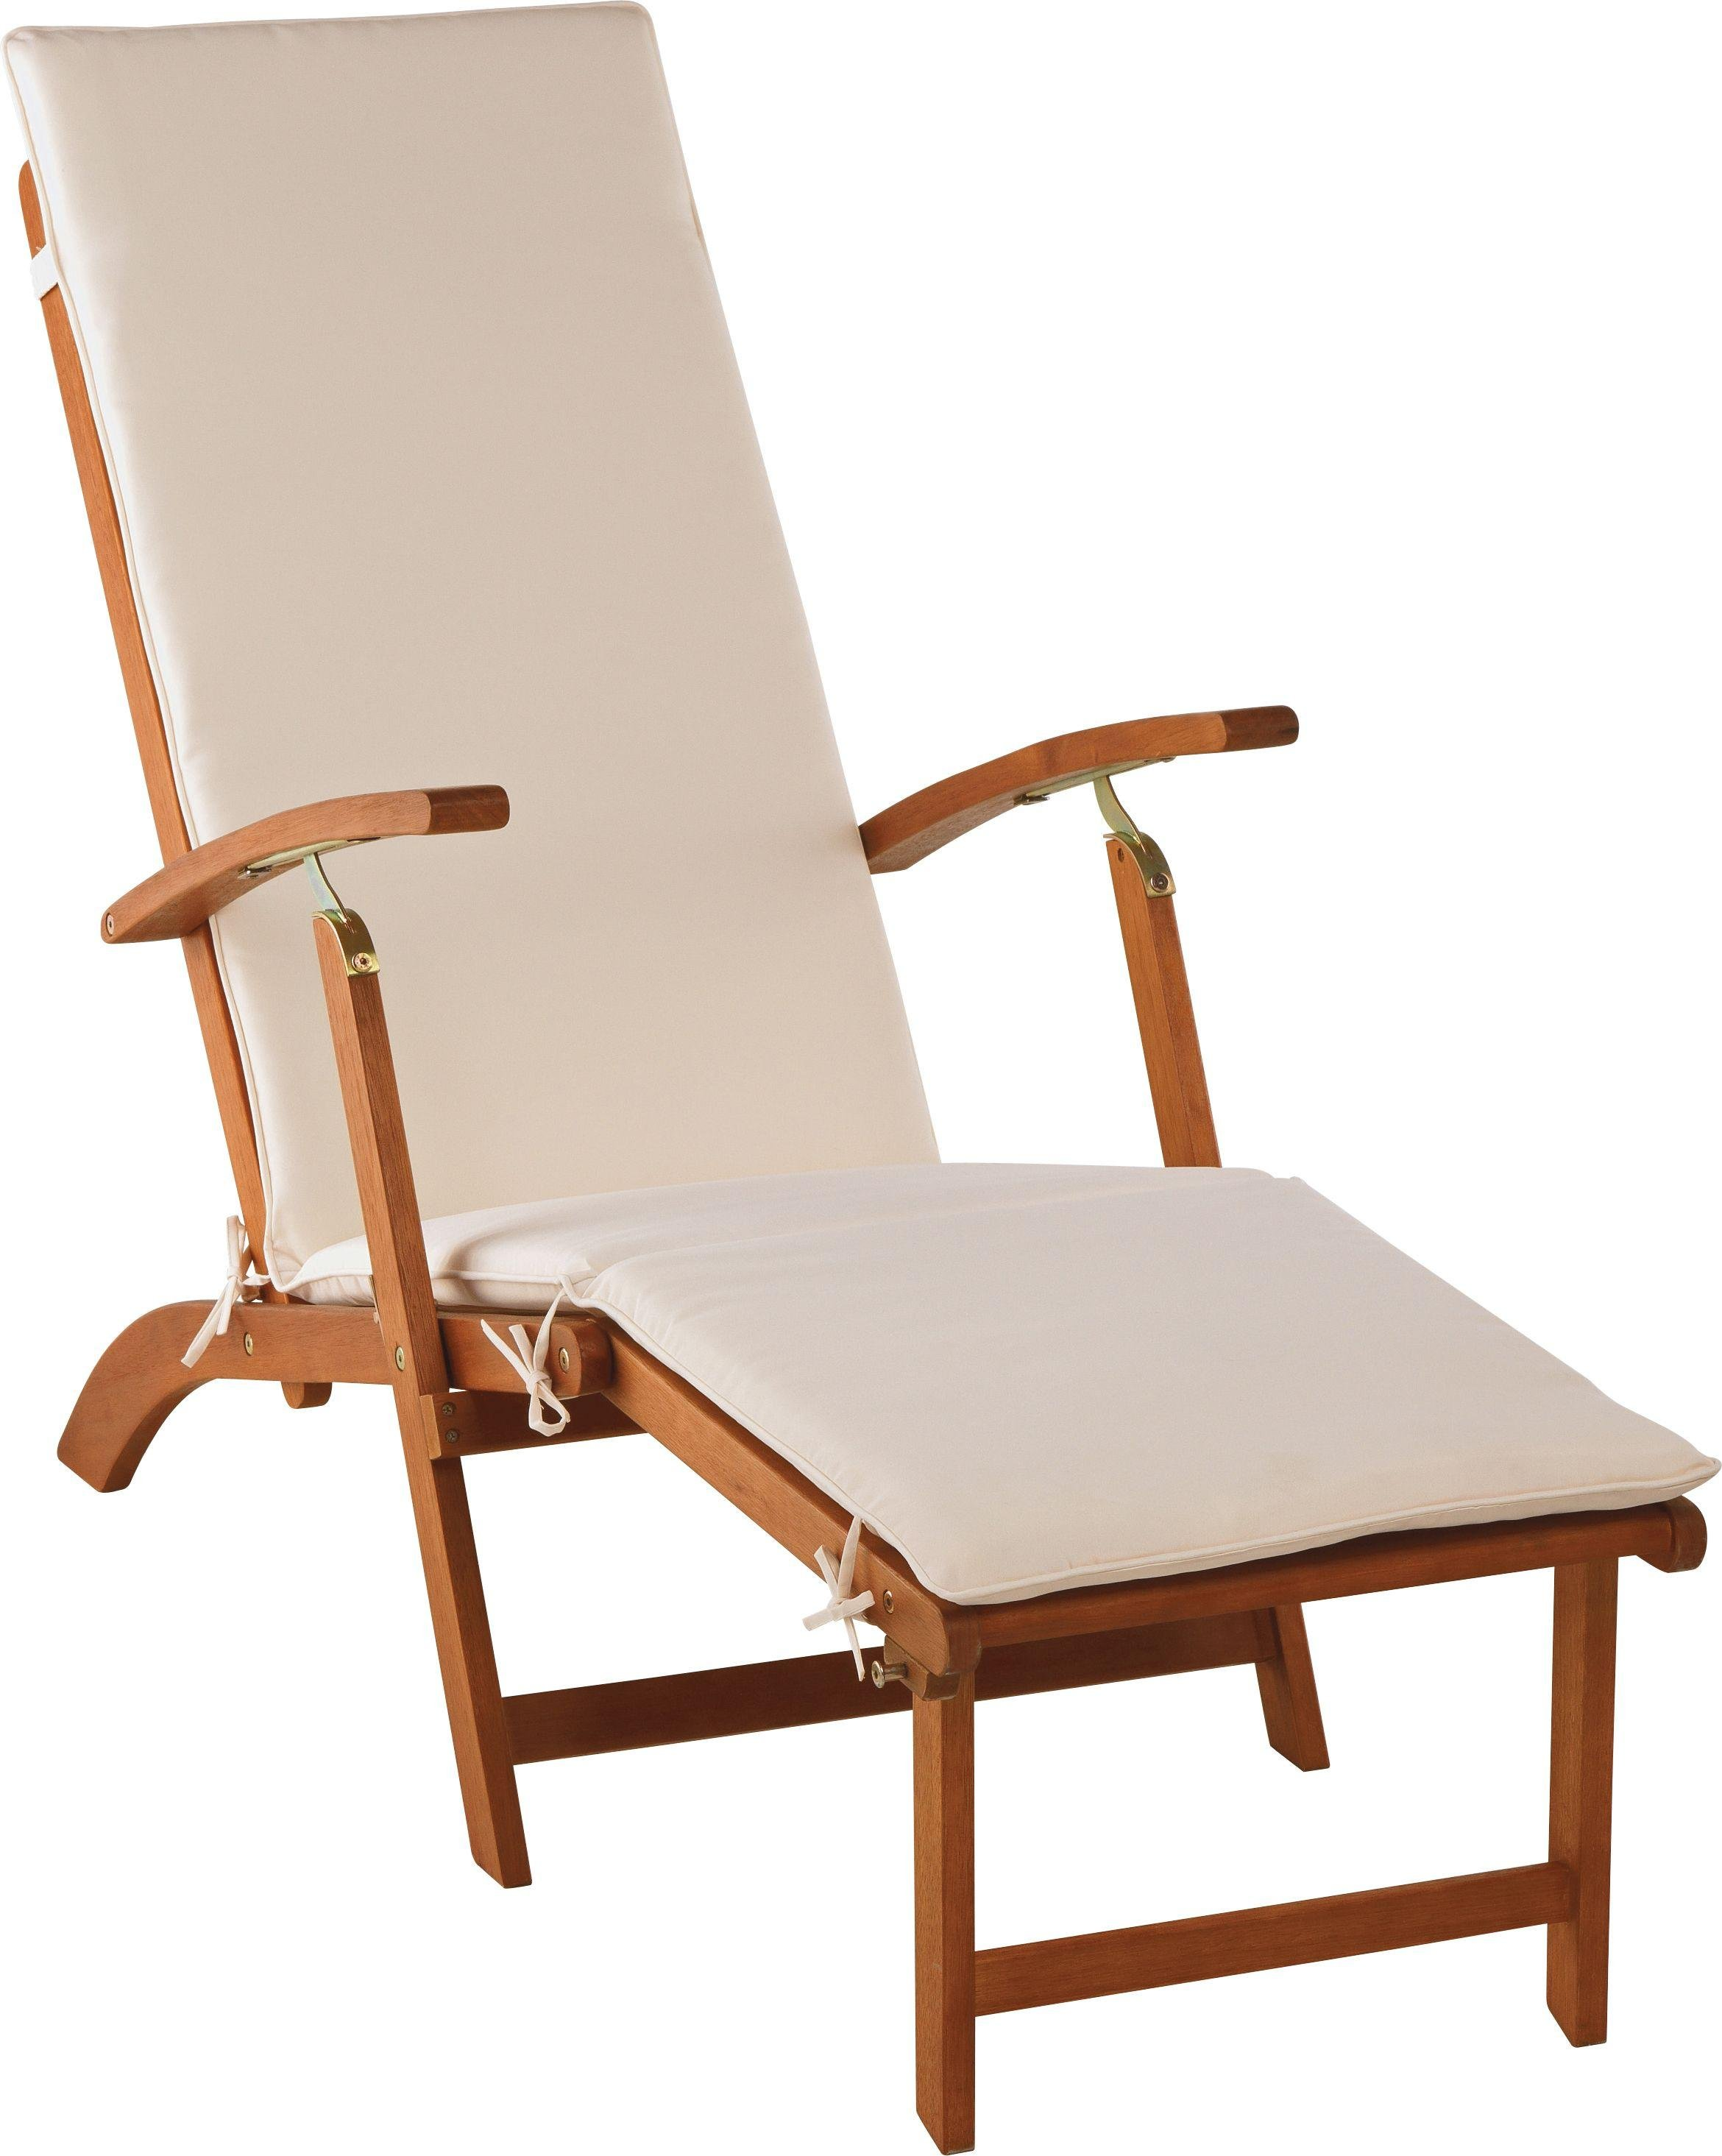 sun loungers buy home steamer foldable multiposition sun lounger with cushion at  argos.co.uk - DAHTORZ